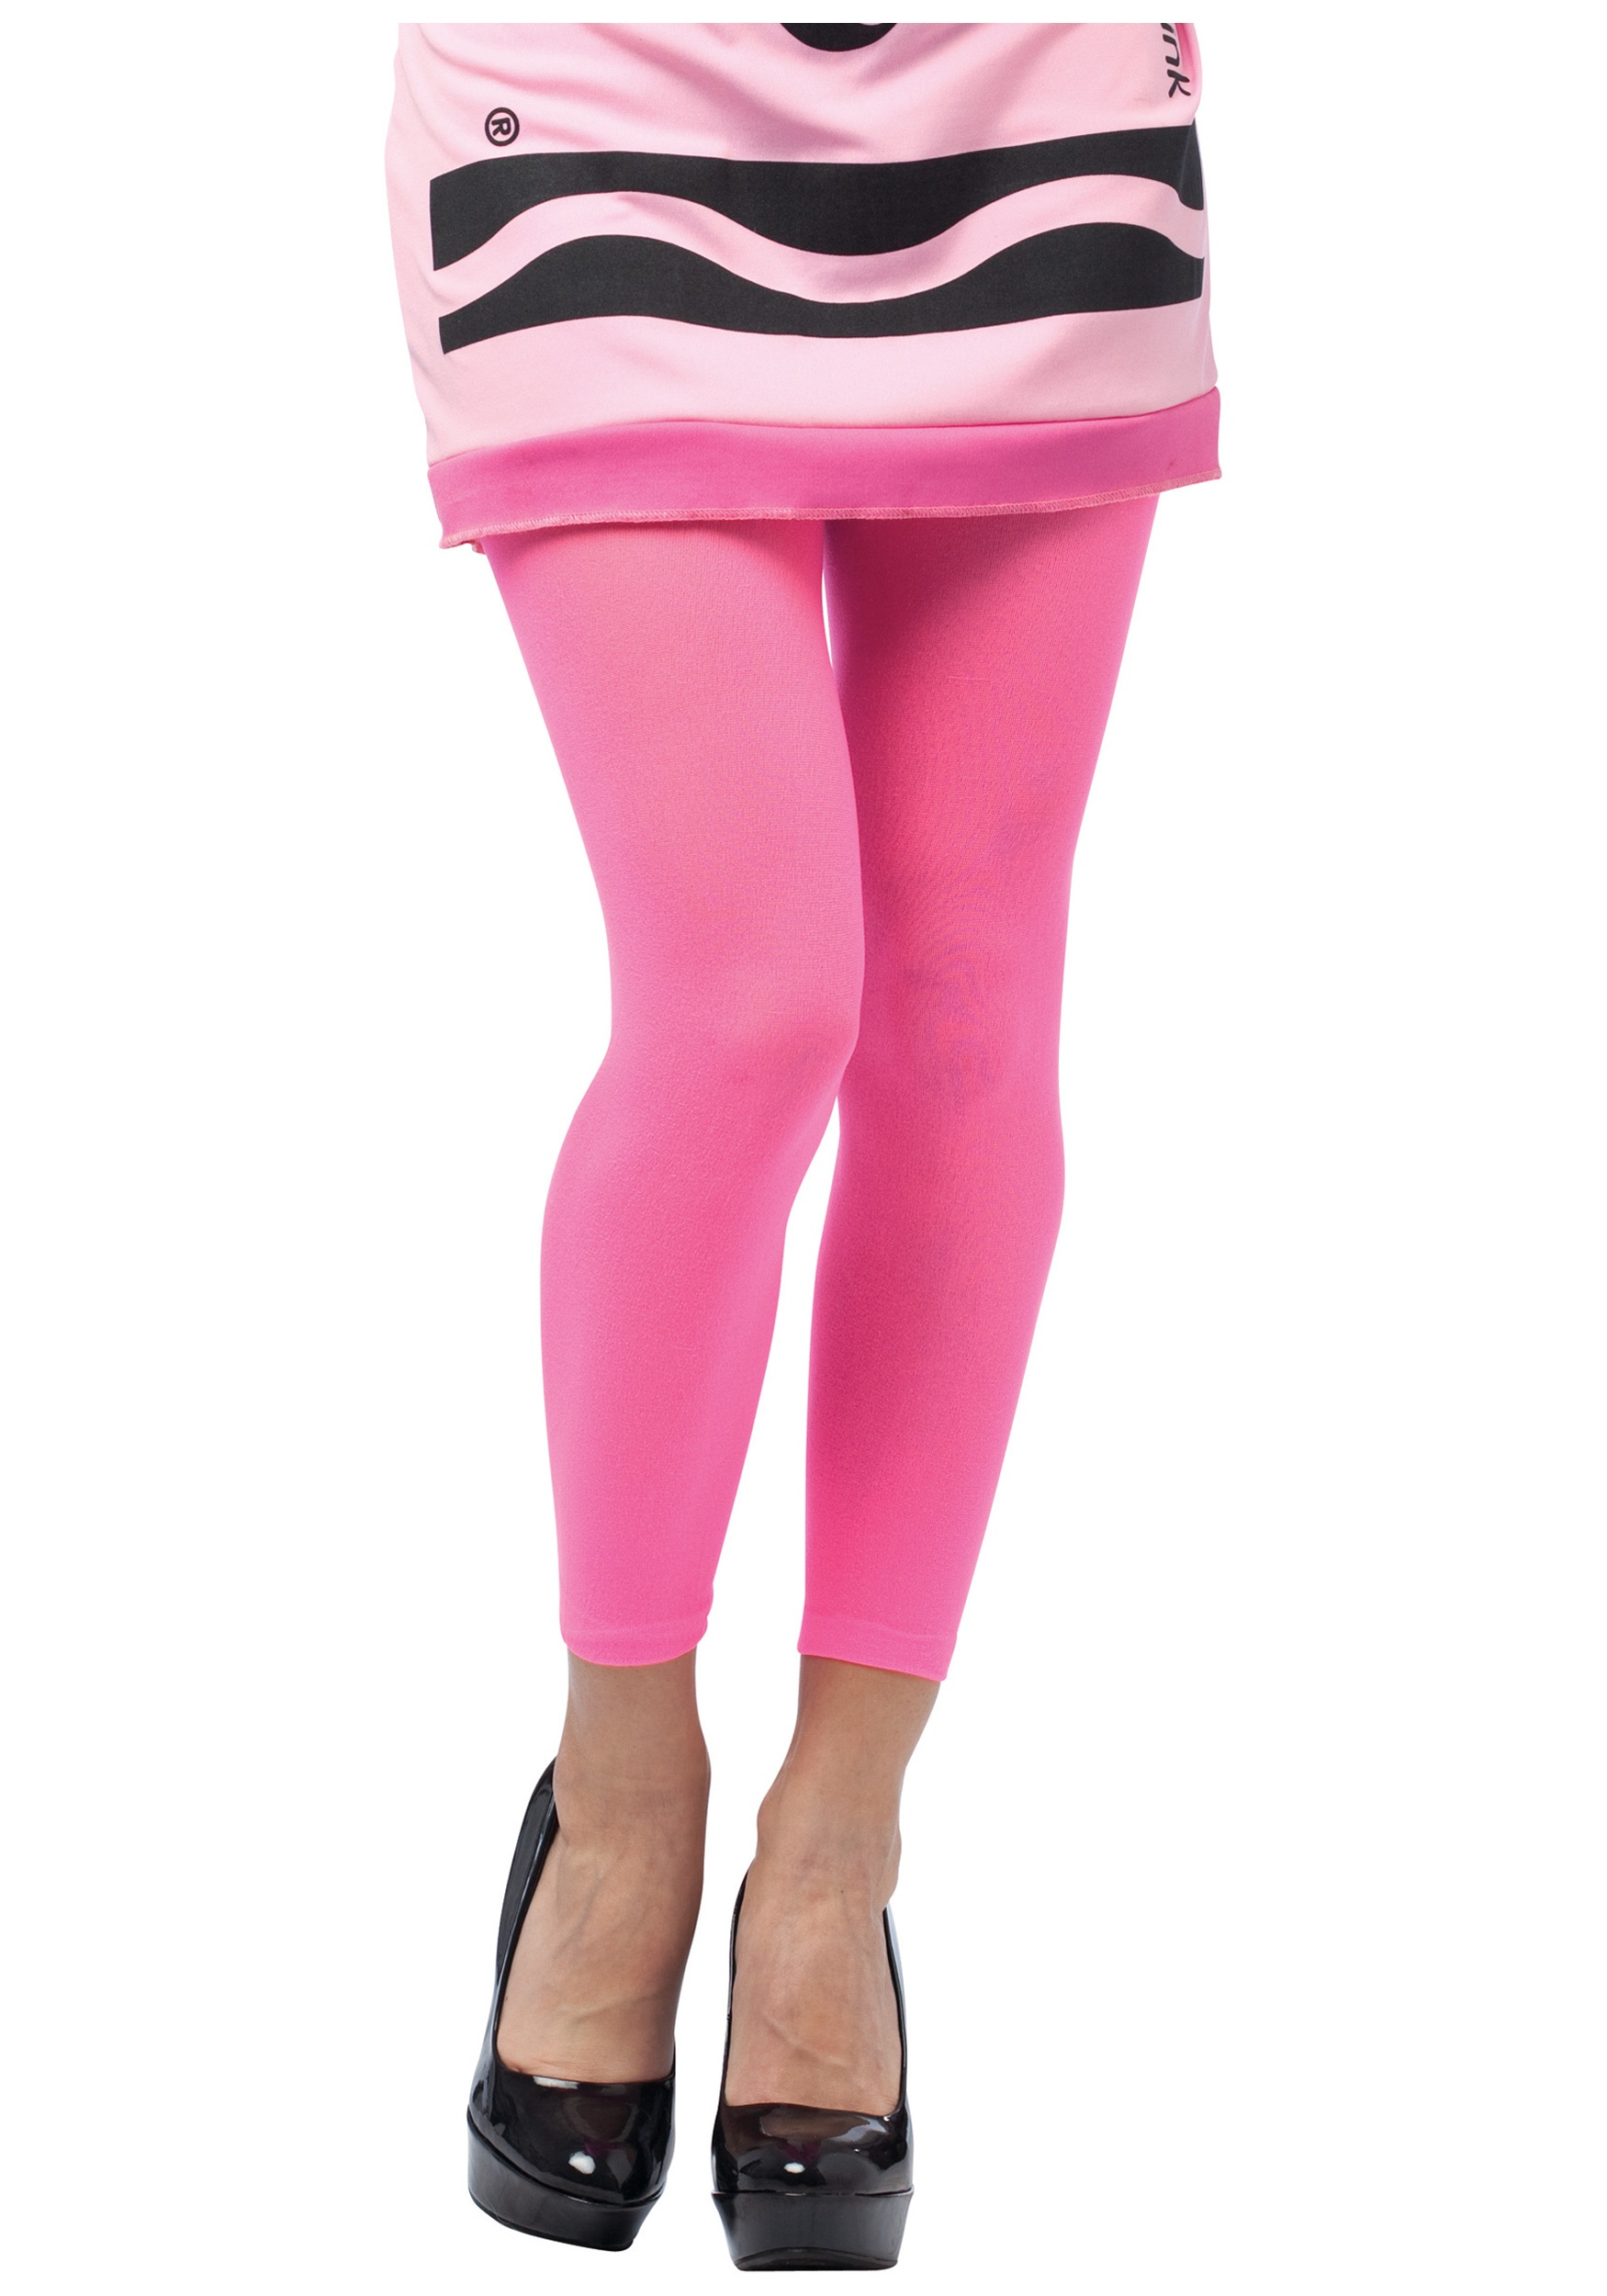 Shop Pink Leggings at Macy's and get FREE SHIPPING with $99 purchase! Shop our great selection of styles and brands for leggings and apparel for women.